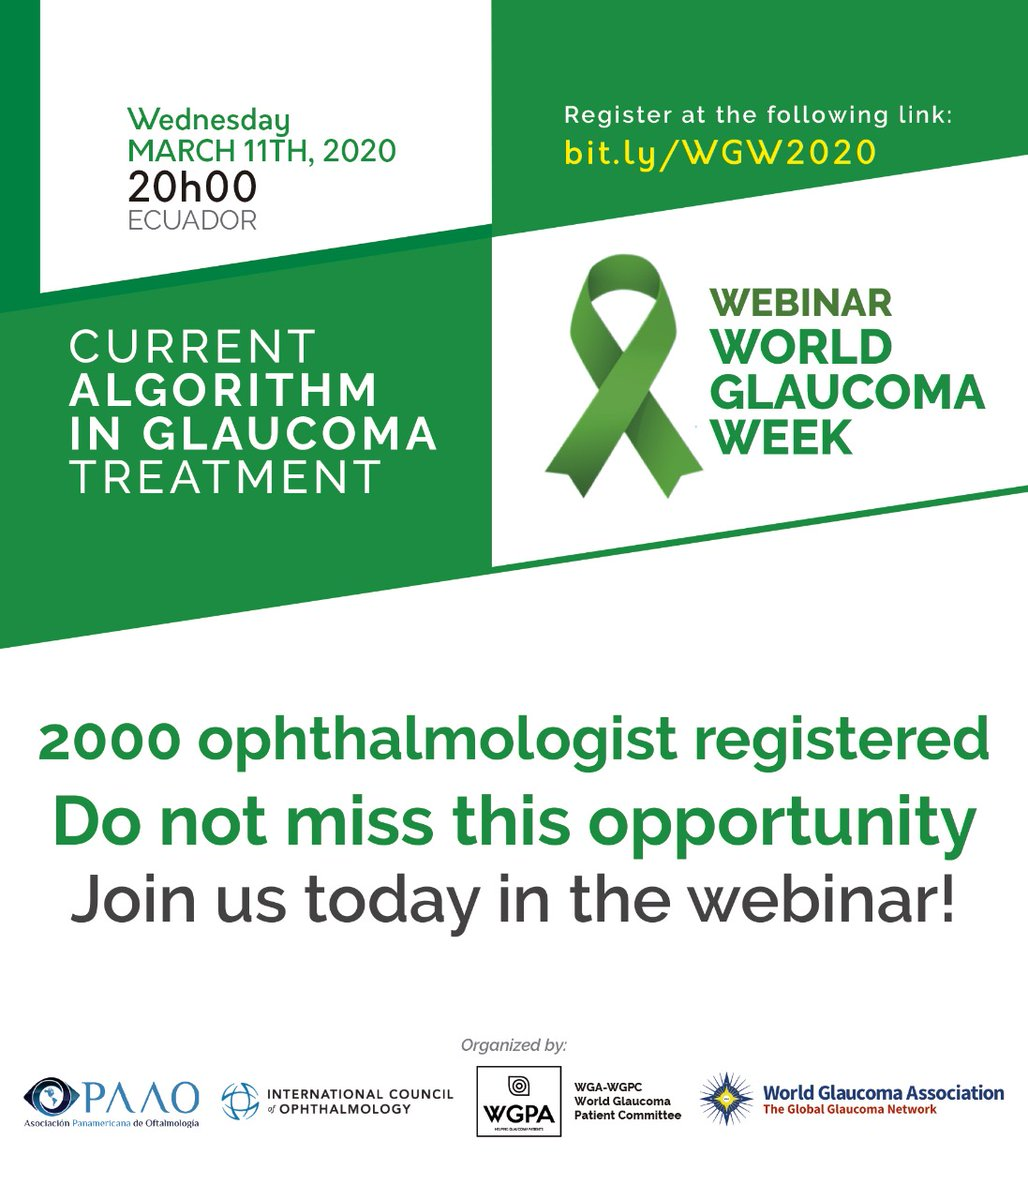 test Twitter Media - You are invited to join the webinar: Glaucoma: algoritmo actual de tratamiento today! Check https://t.co/jH6tq51jmu for more information. #glaucomaweek #WGW2020 https://t.co/bjAdOIPEFj